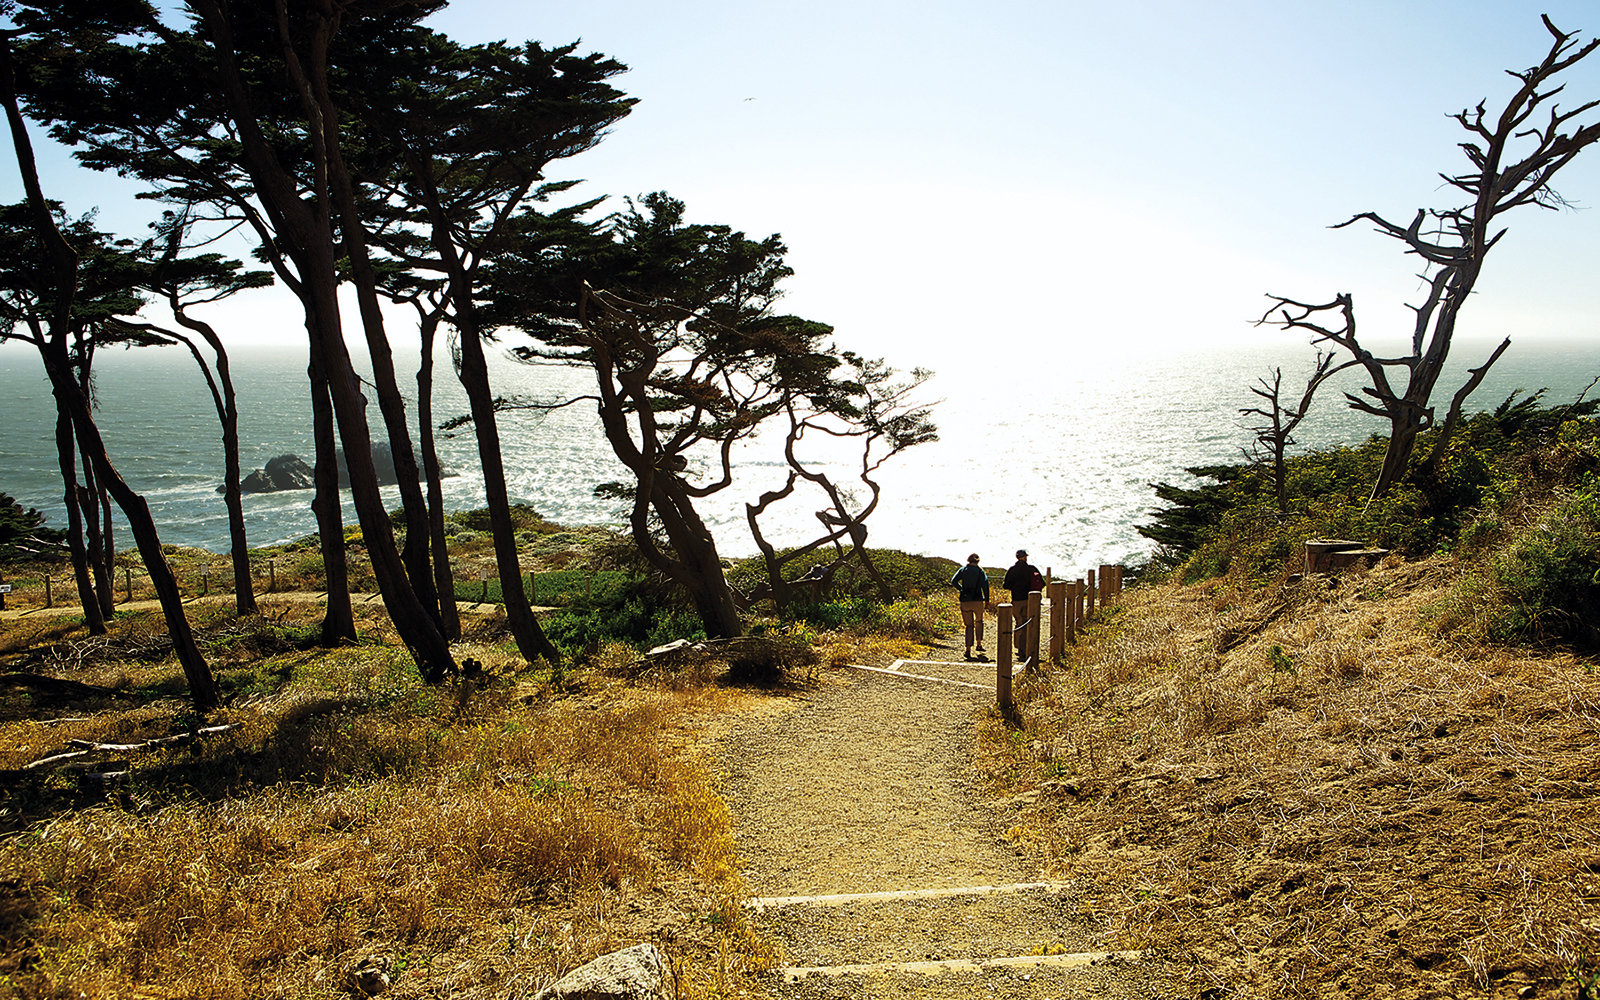 Hiking in San Francisco